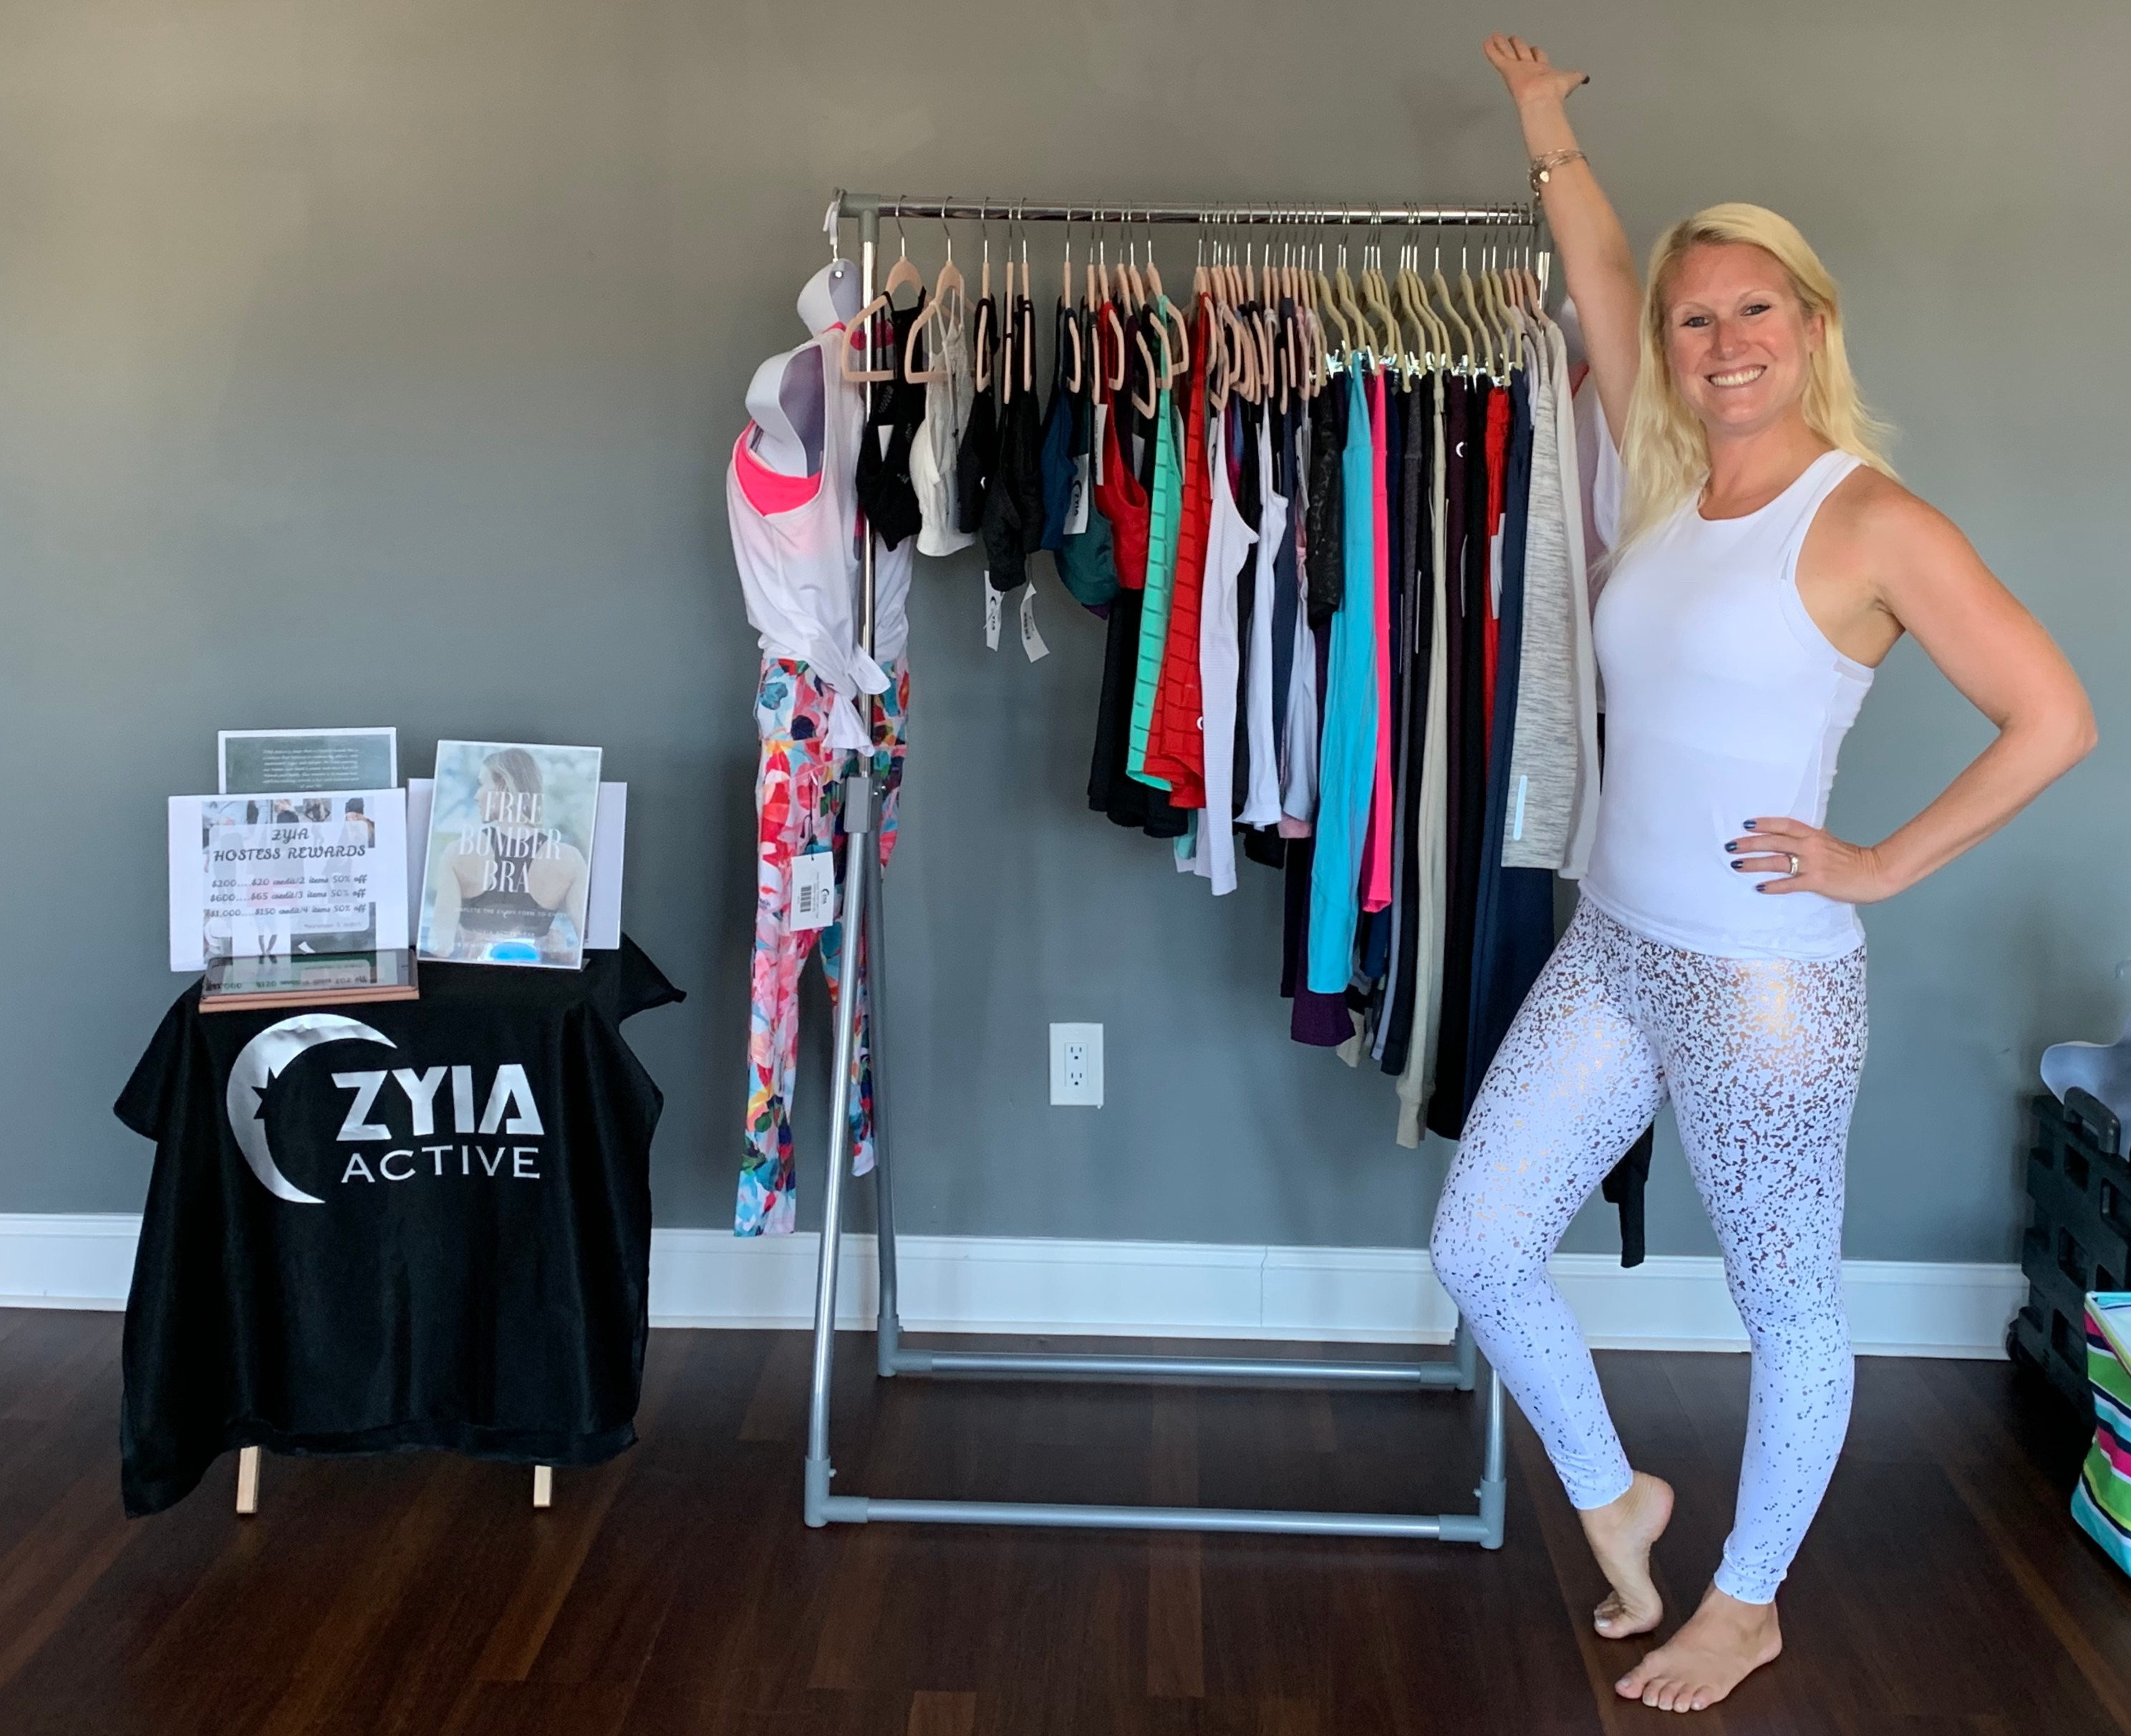 Mandy and ZYIA products